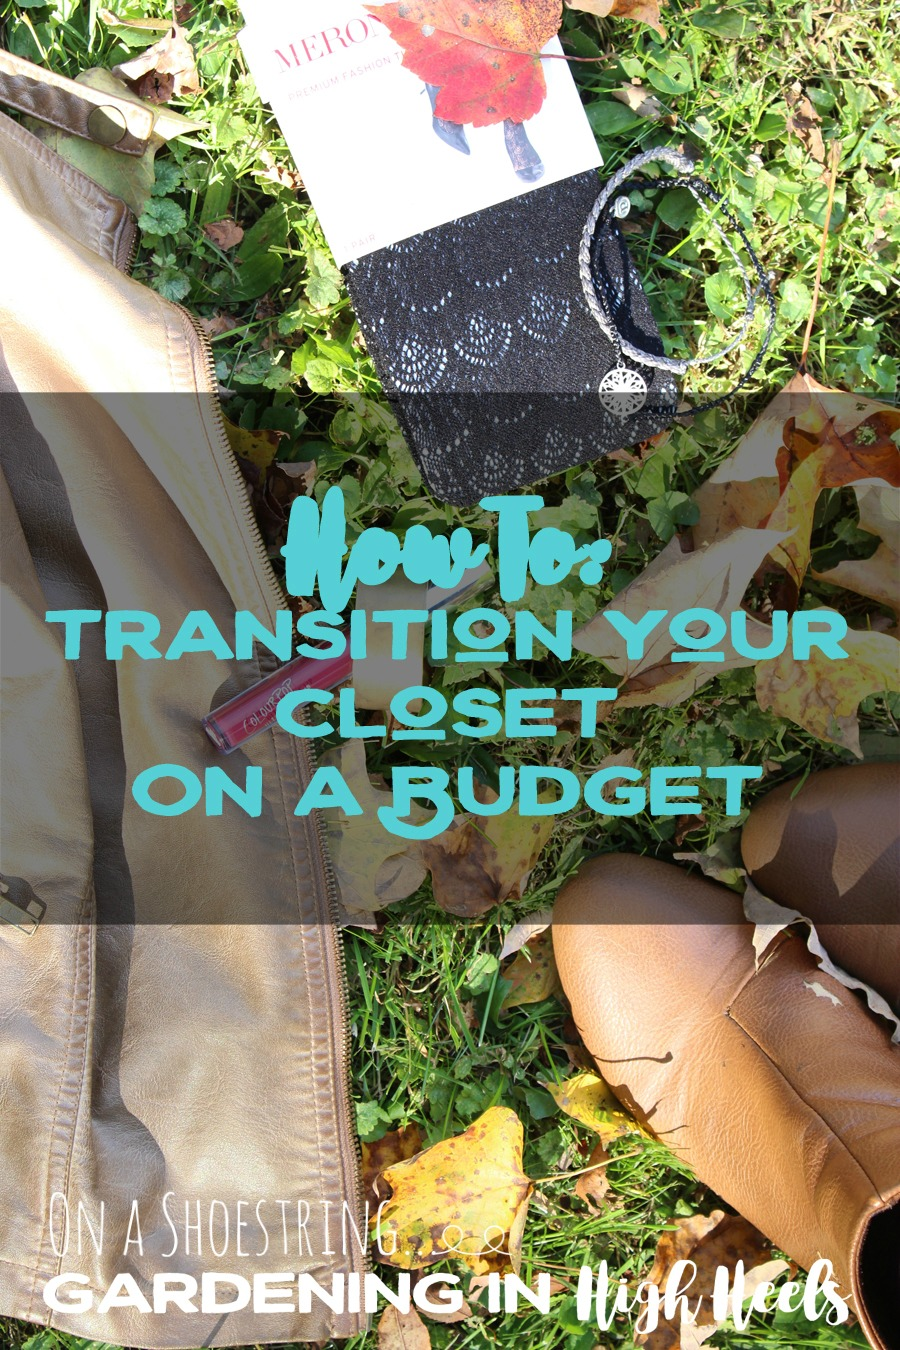 It's so easy to take your summer outfits and make them fall-ready and fabulous, even on a budget!